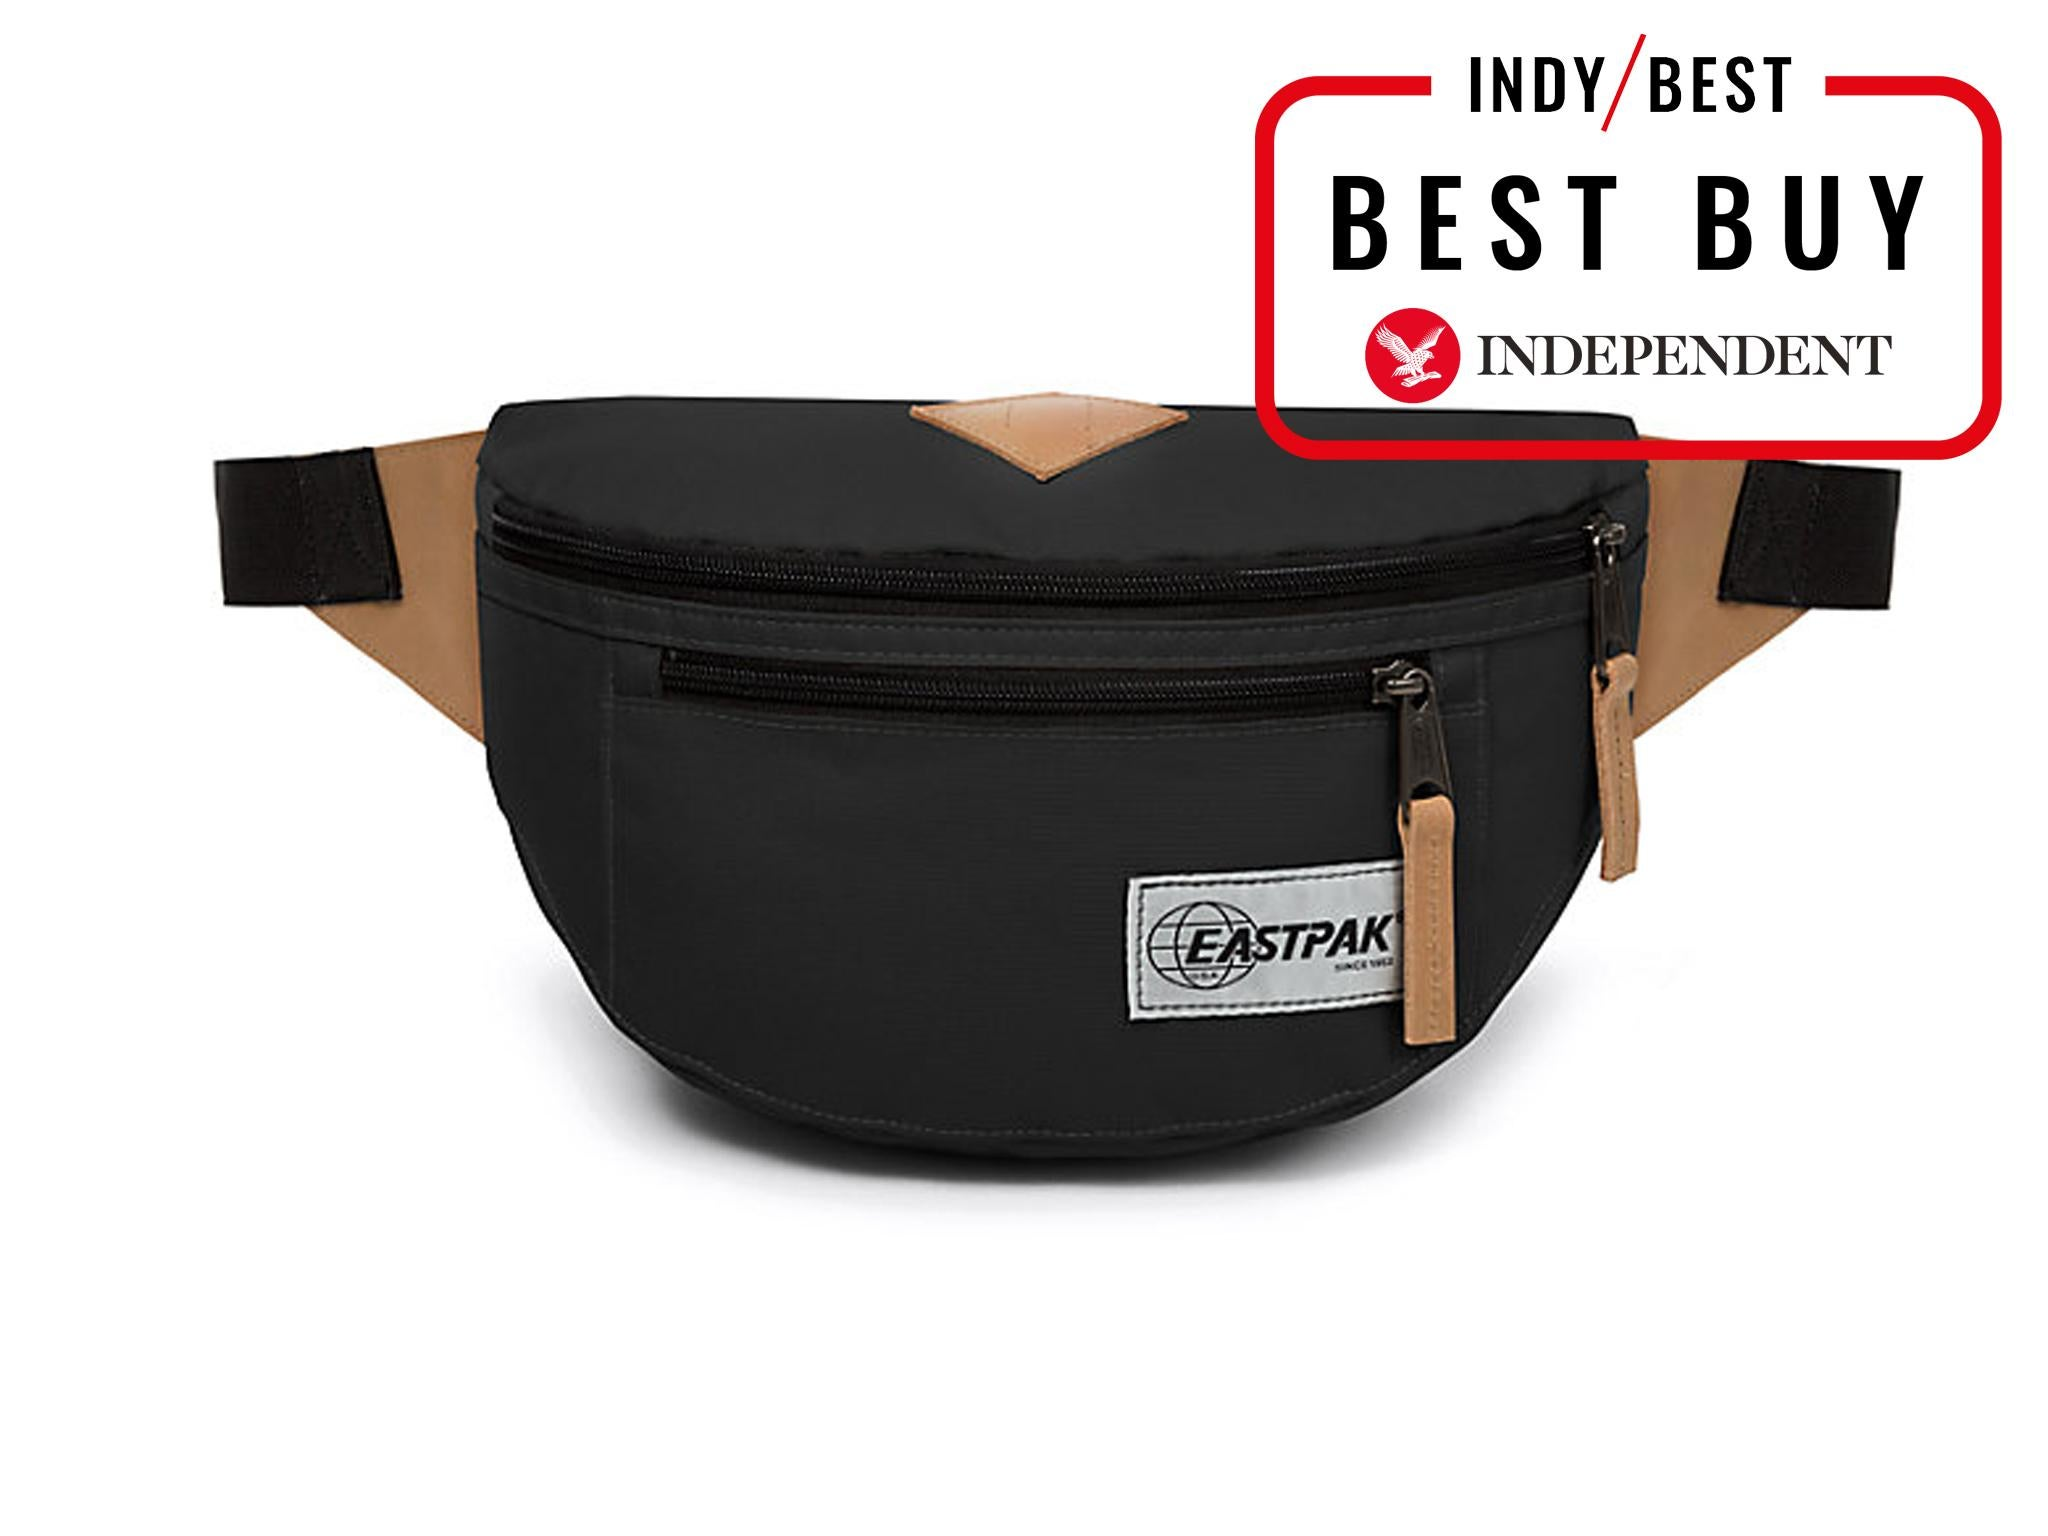 10fee357ec 11 best bum bags   The Independent